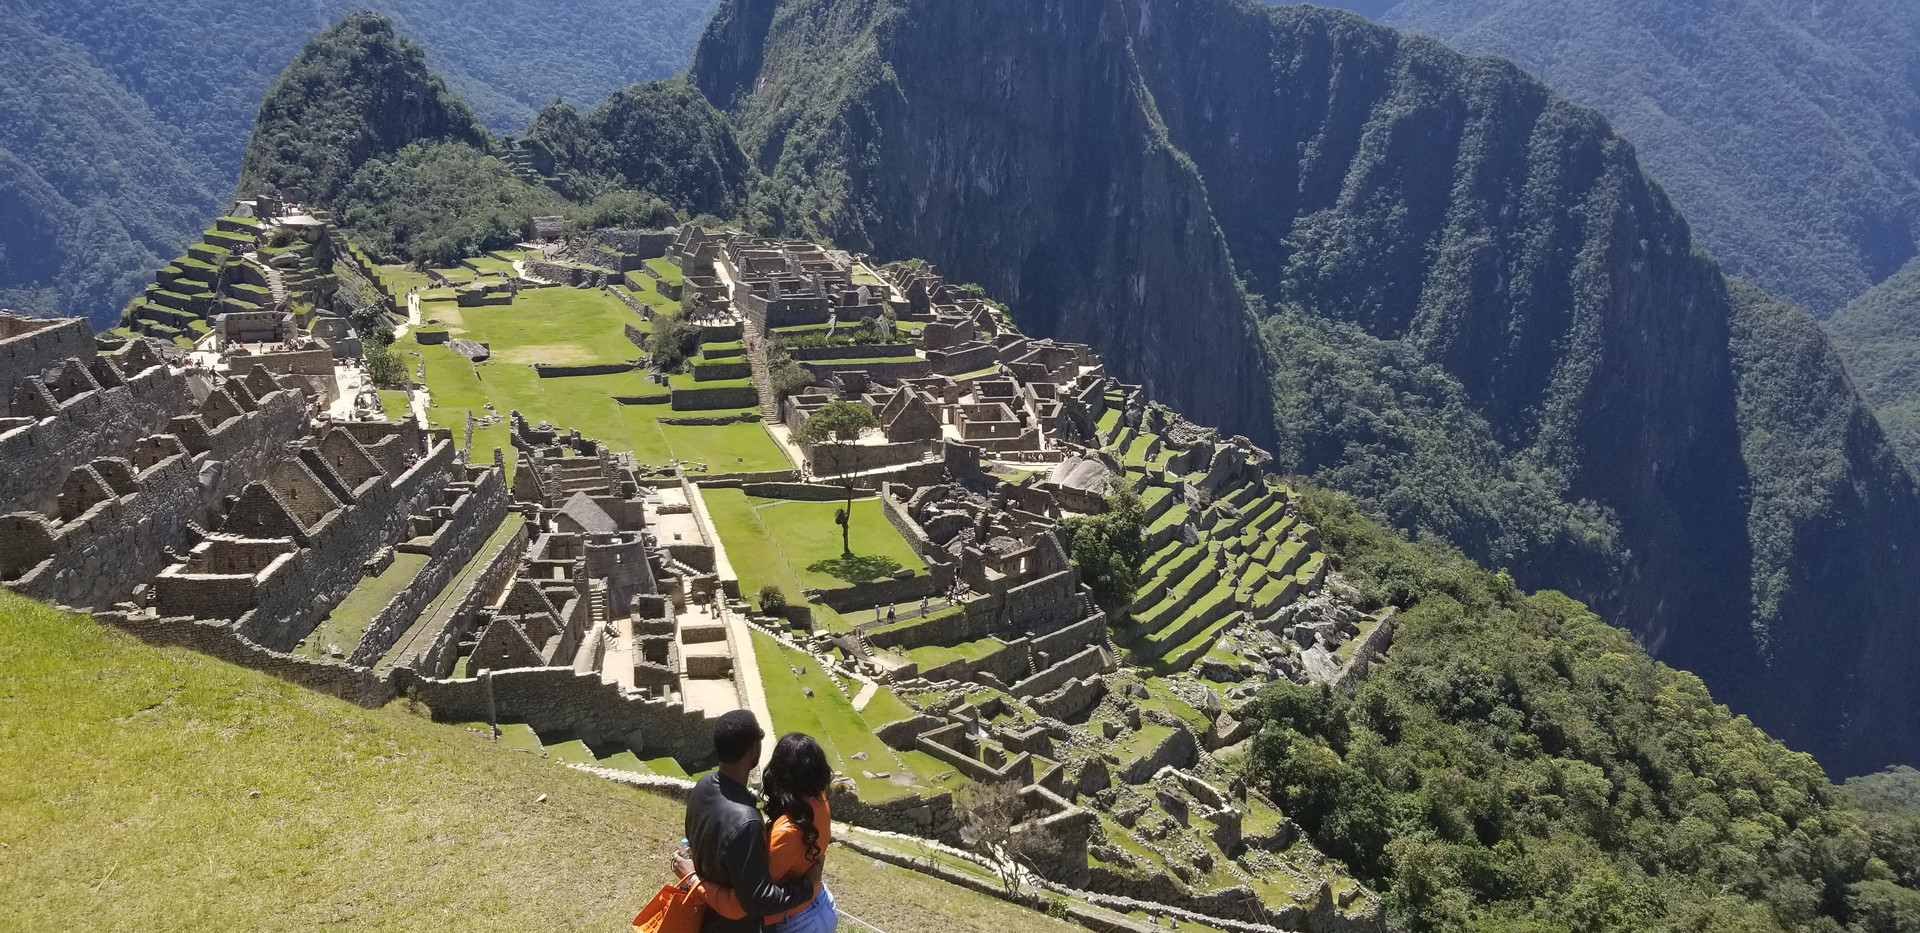 Standing at the top of Machu Picchu